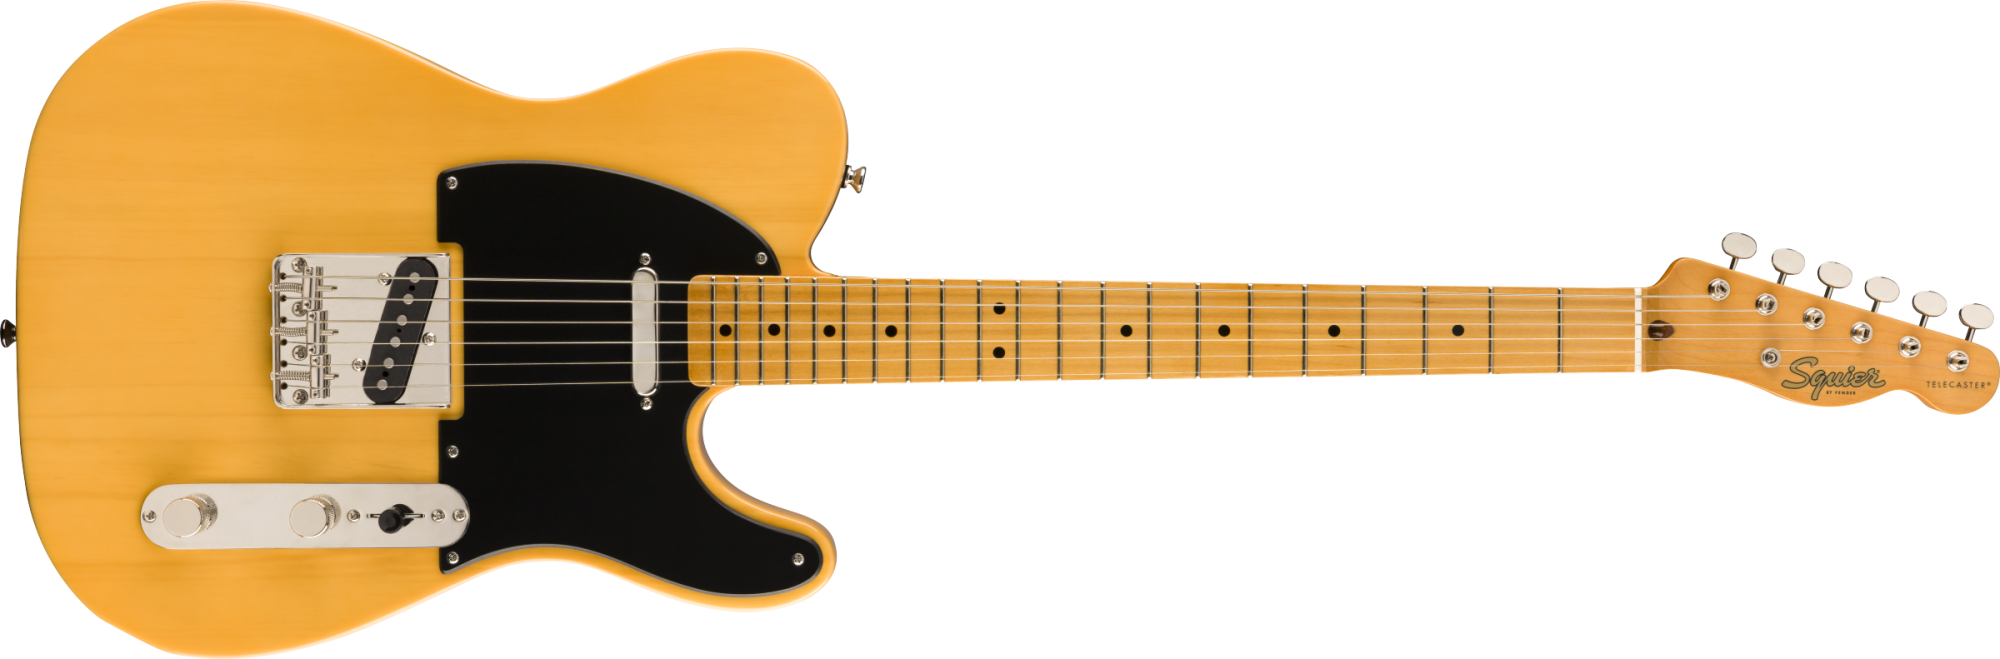 Squier Classic Vibe 50s Telecaster - Maple Fingerboard - Butterscotch Blonde